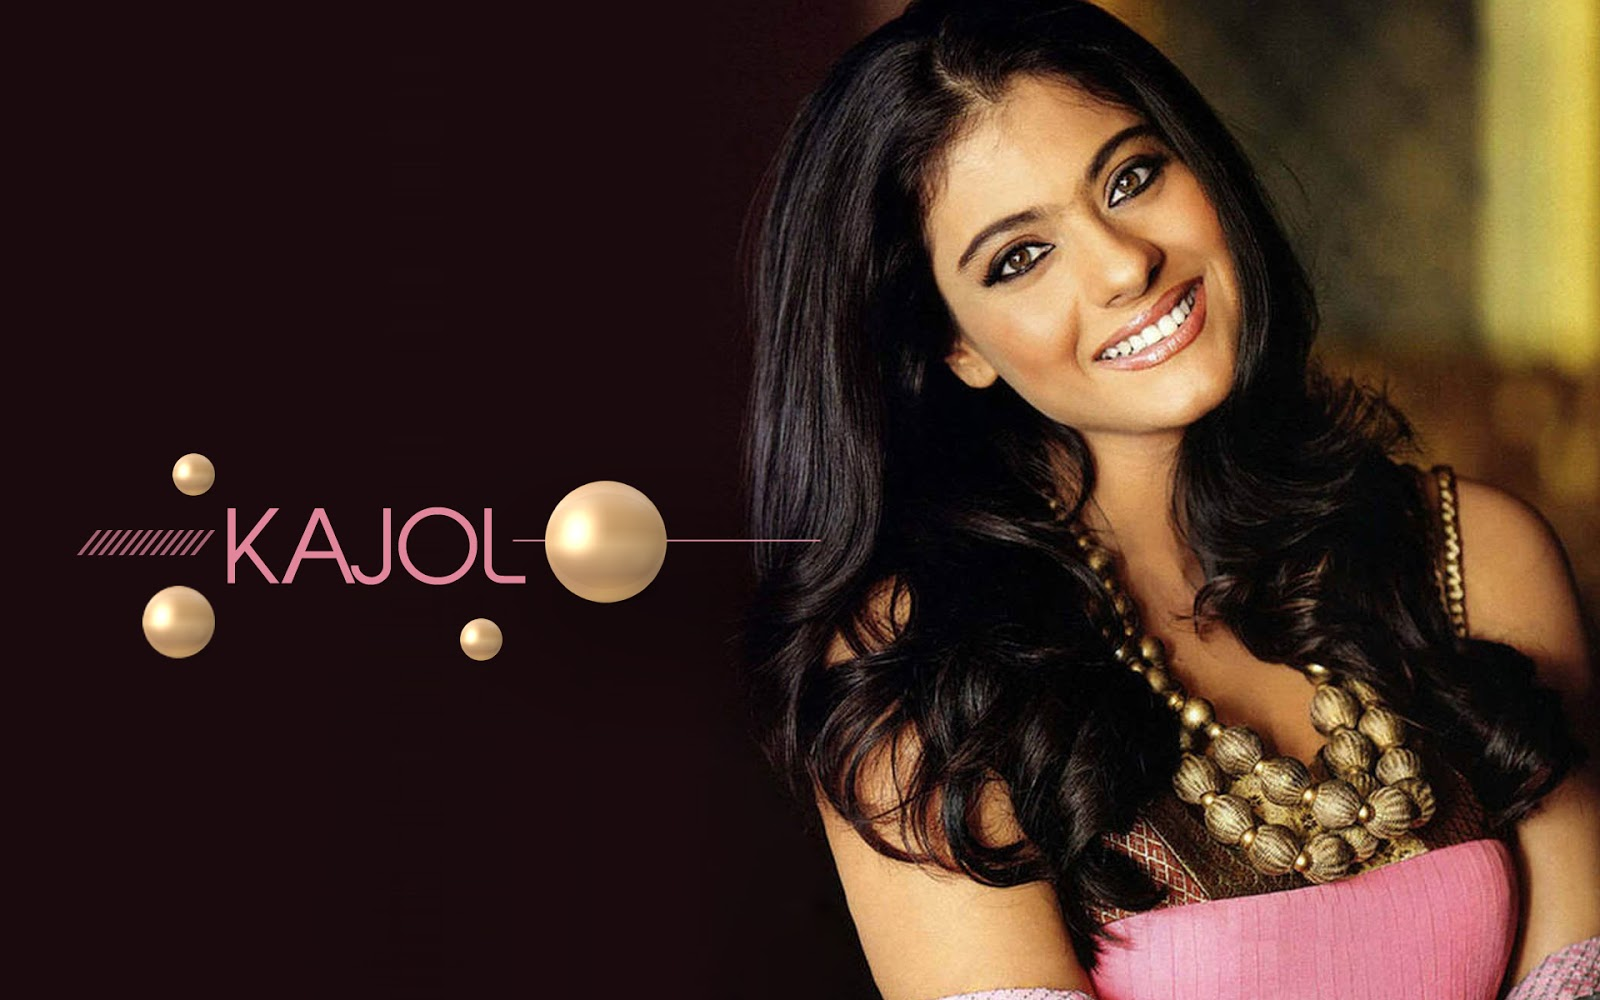 Top 50 Kajol Devgan HD Images Photos And Pictures Free Download